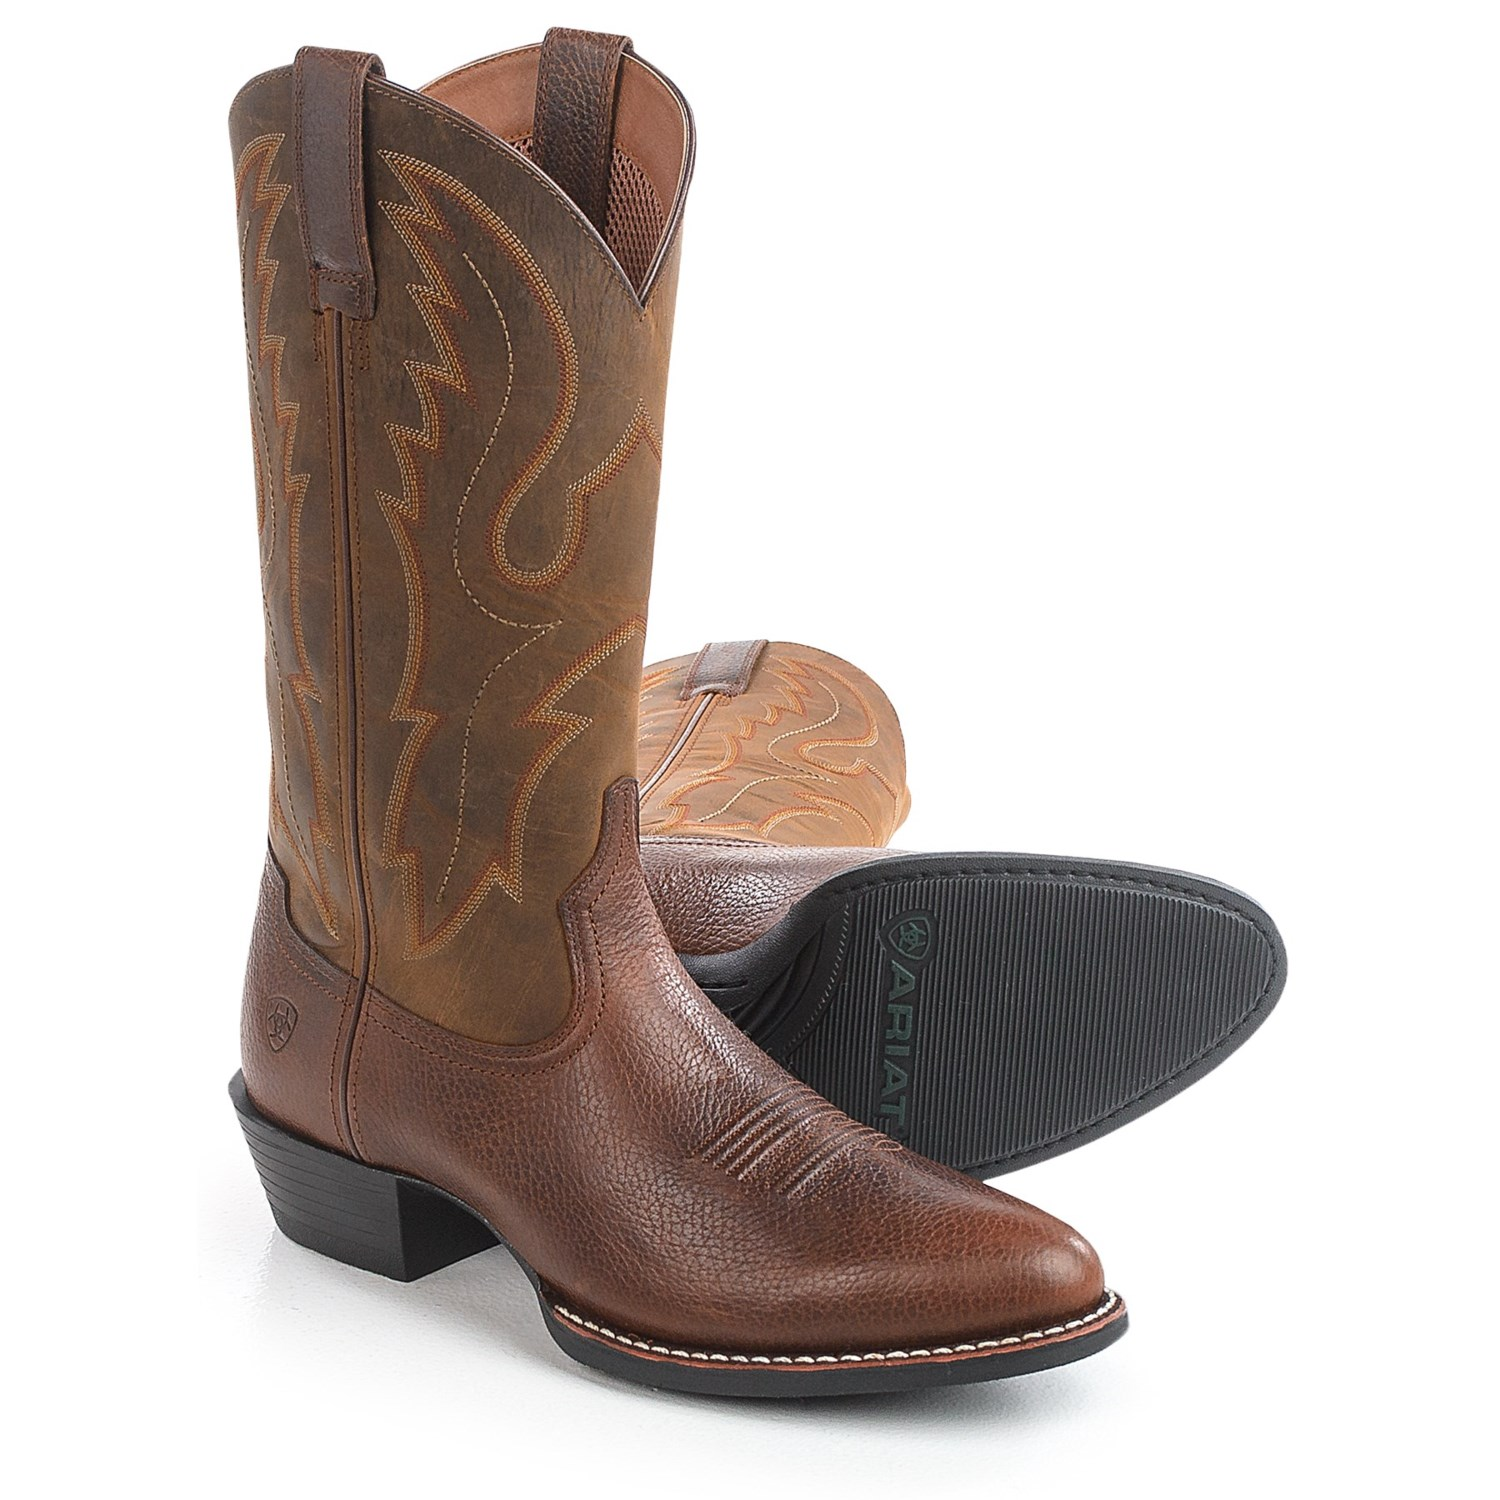 Ariat: Average savings of 50% at Sierra Trading Post